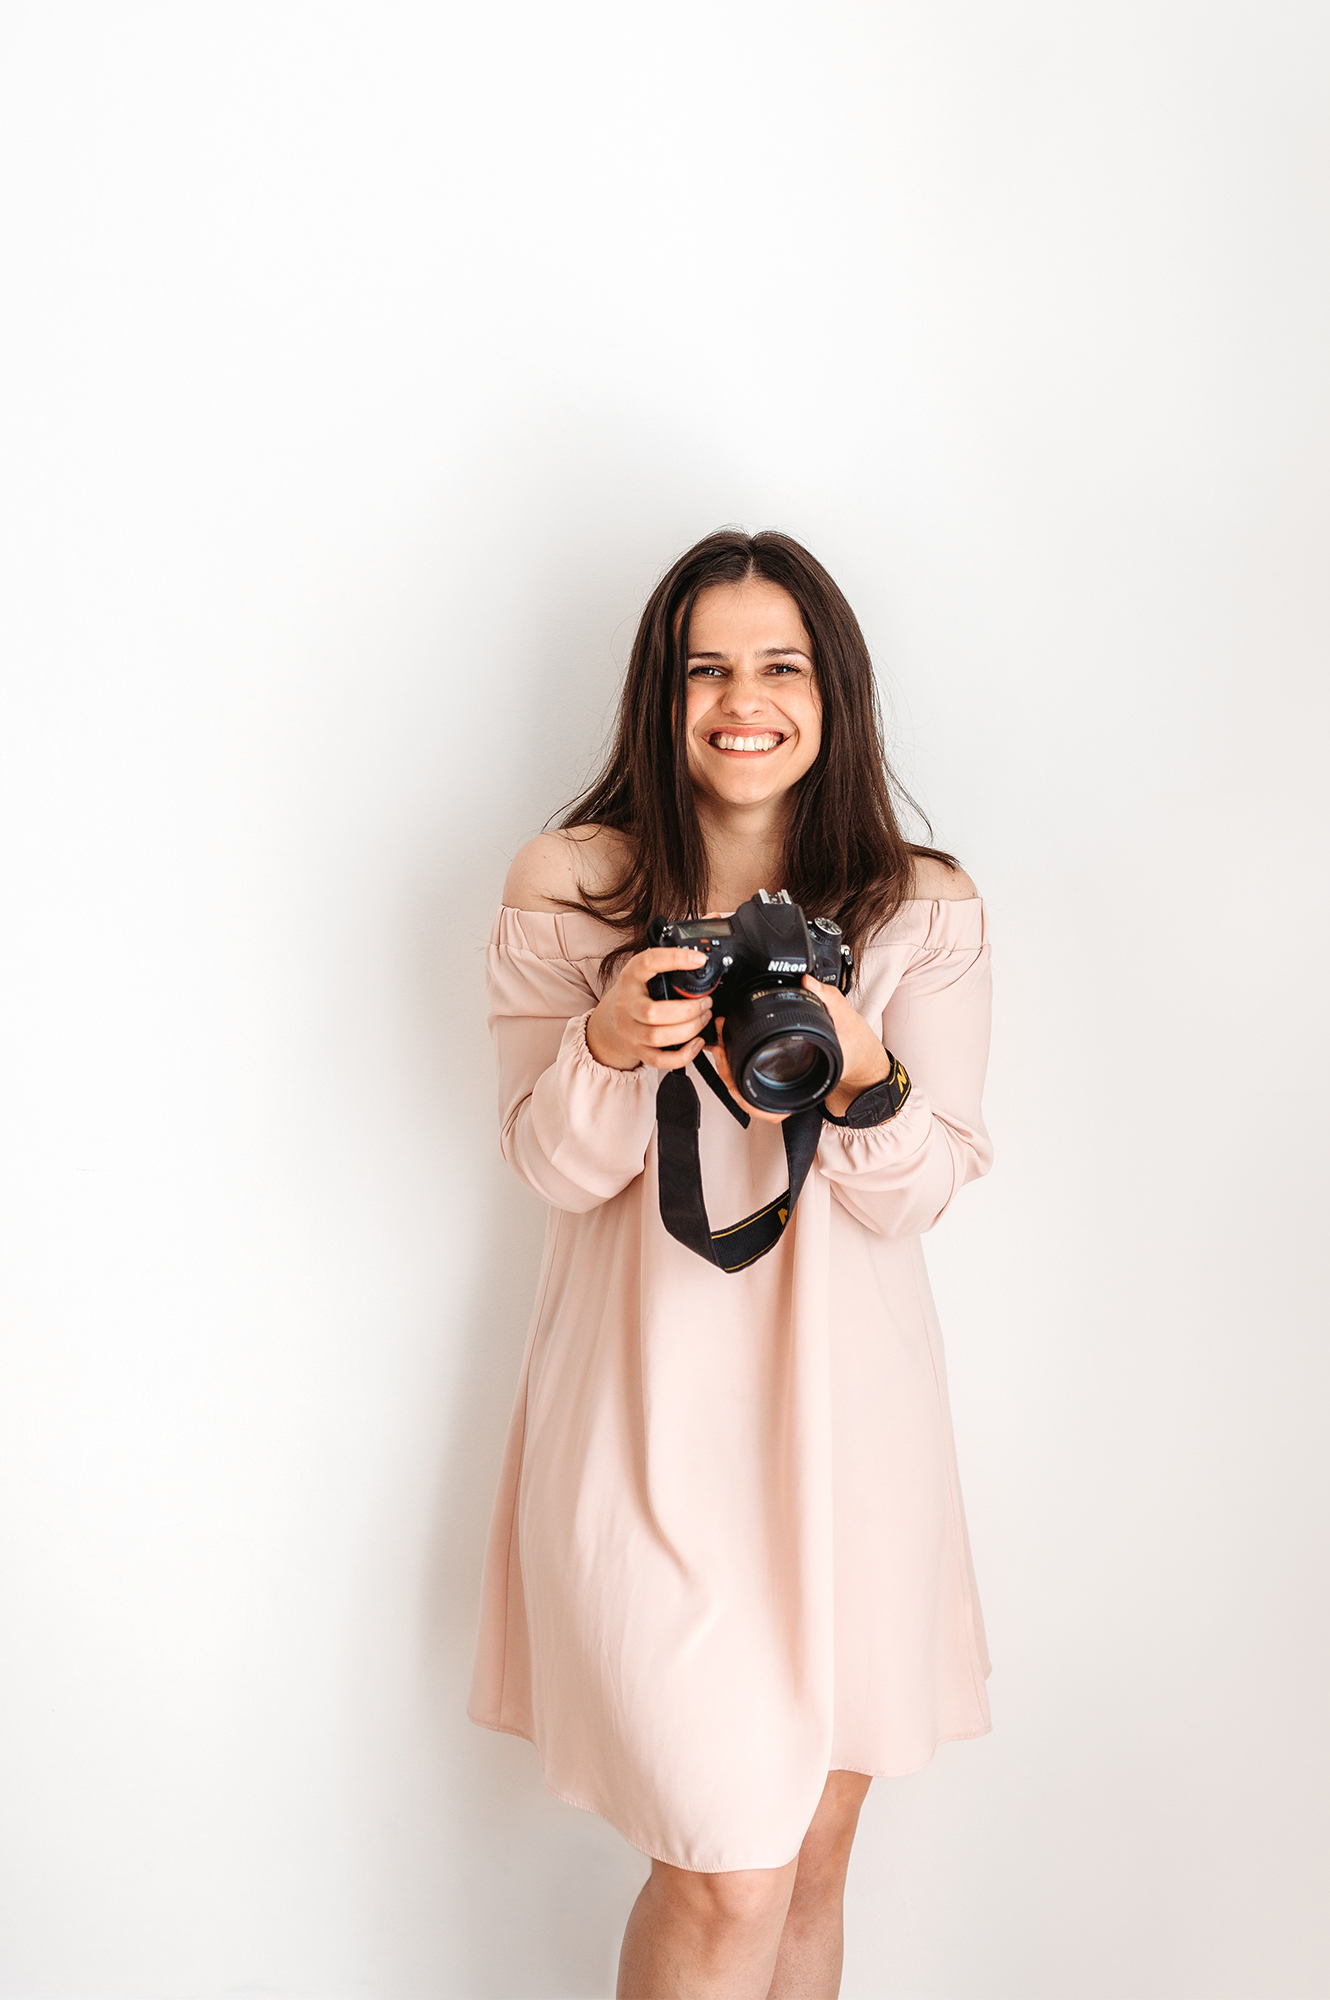 Barnsley photographer, self portrait - me smiling at the camera